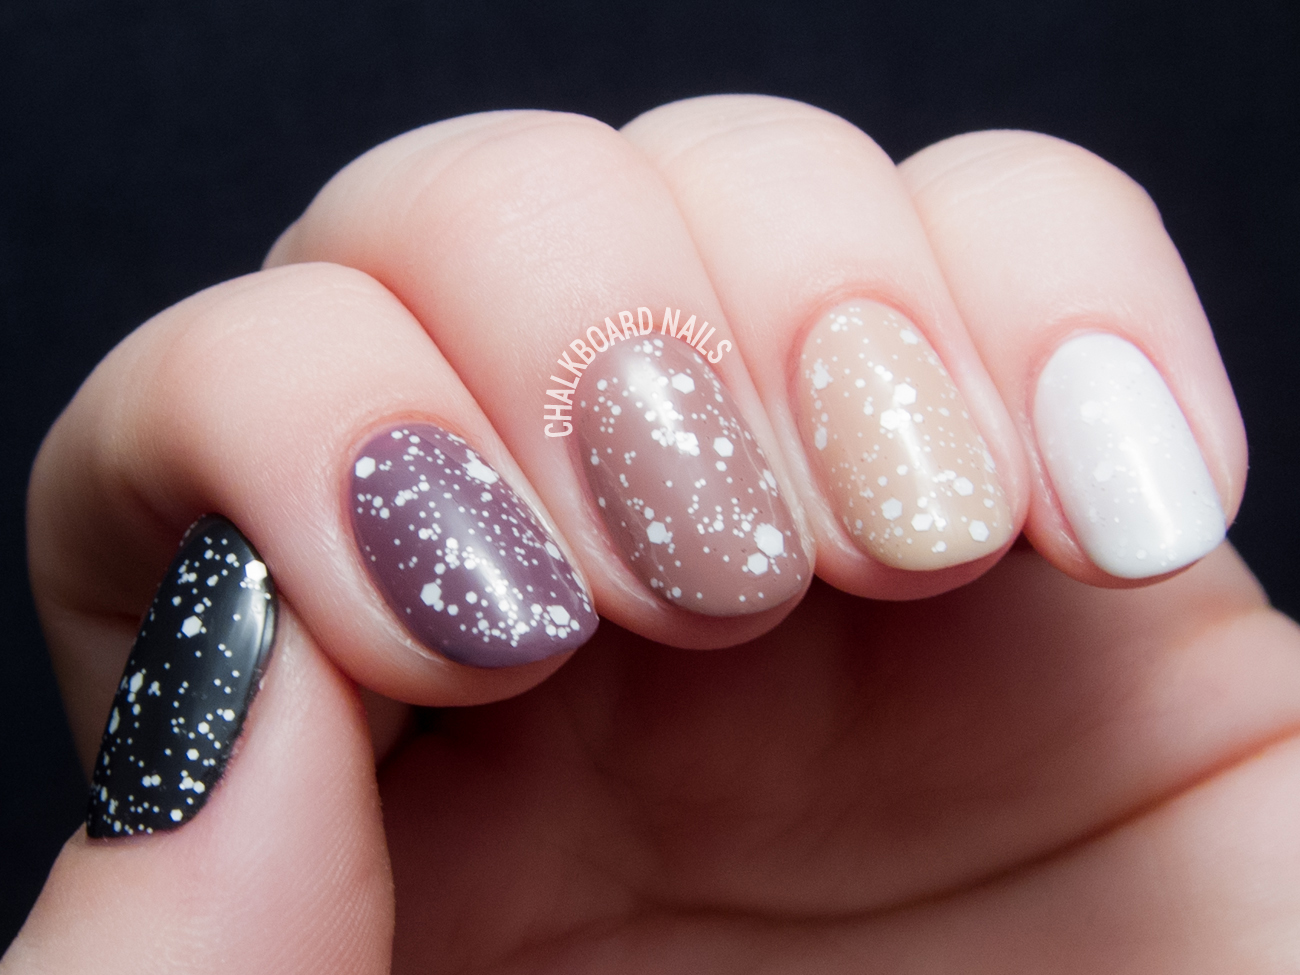 Nude and Mauve Ombre with Lacy Glitter | Chalkboard Nails ...